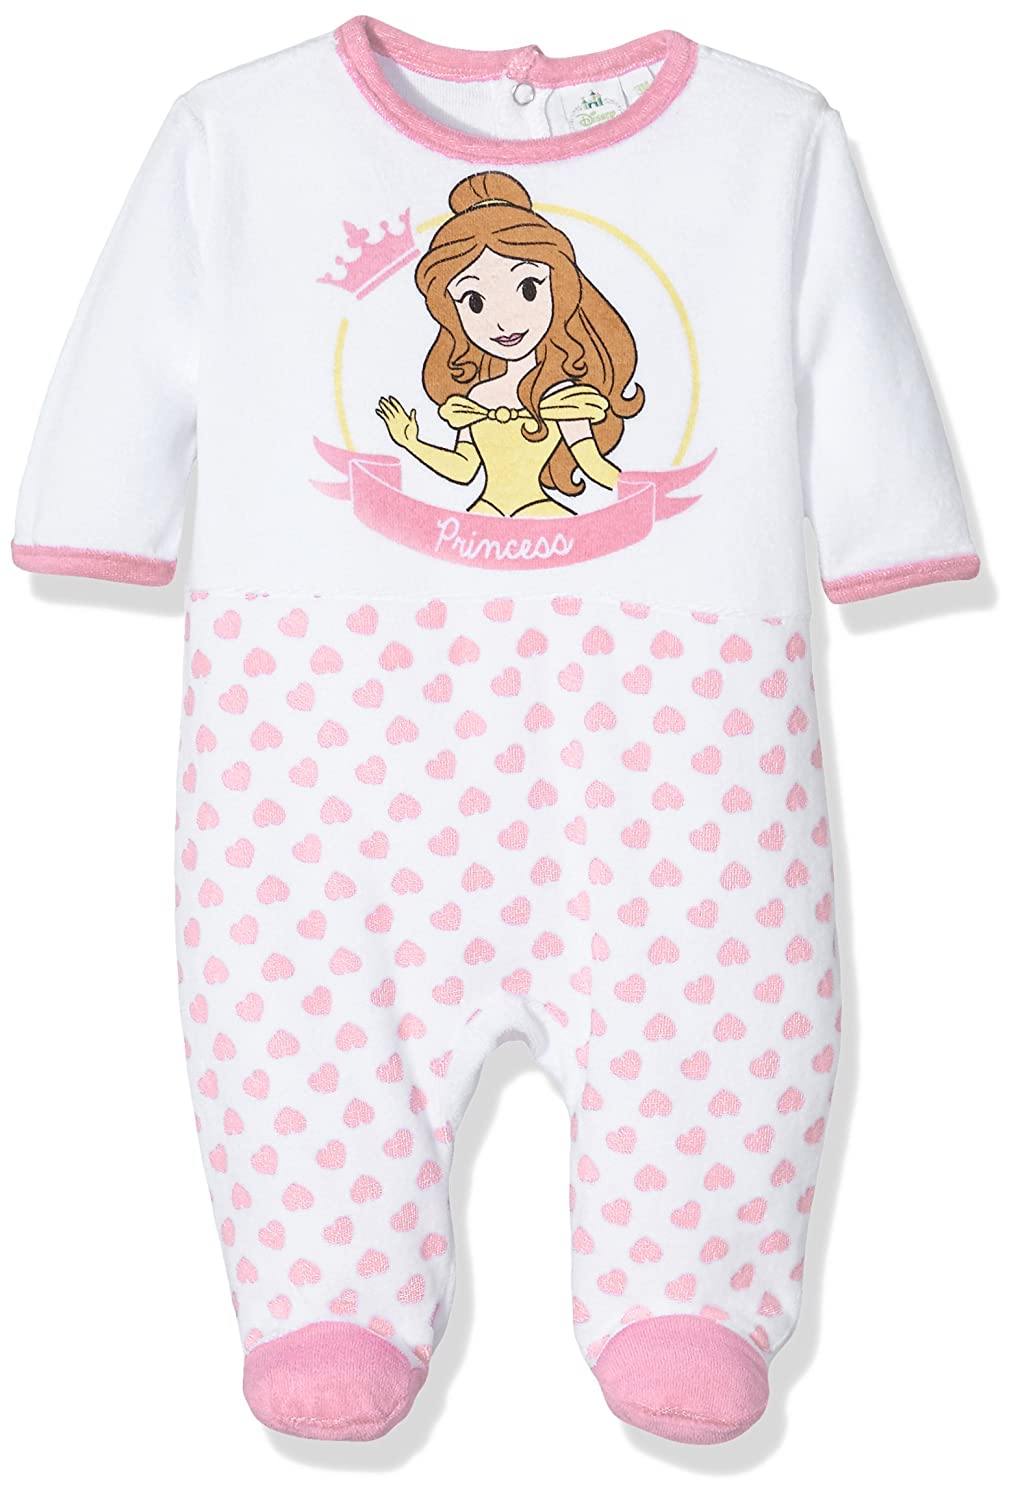 Disney Baby Girls Princess Bg Sleepsuit HO0378